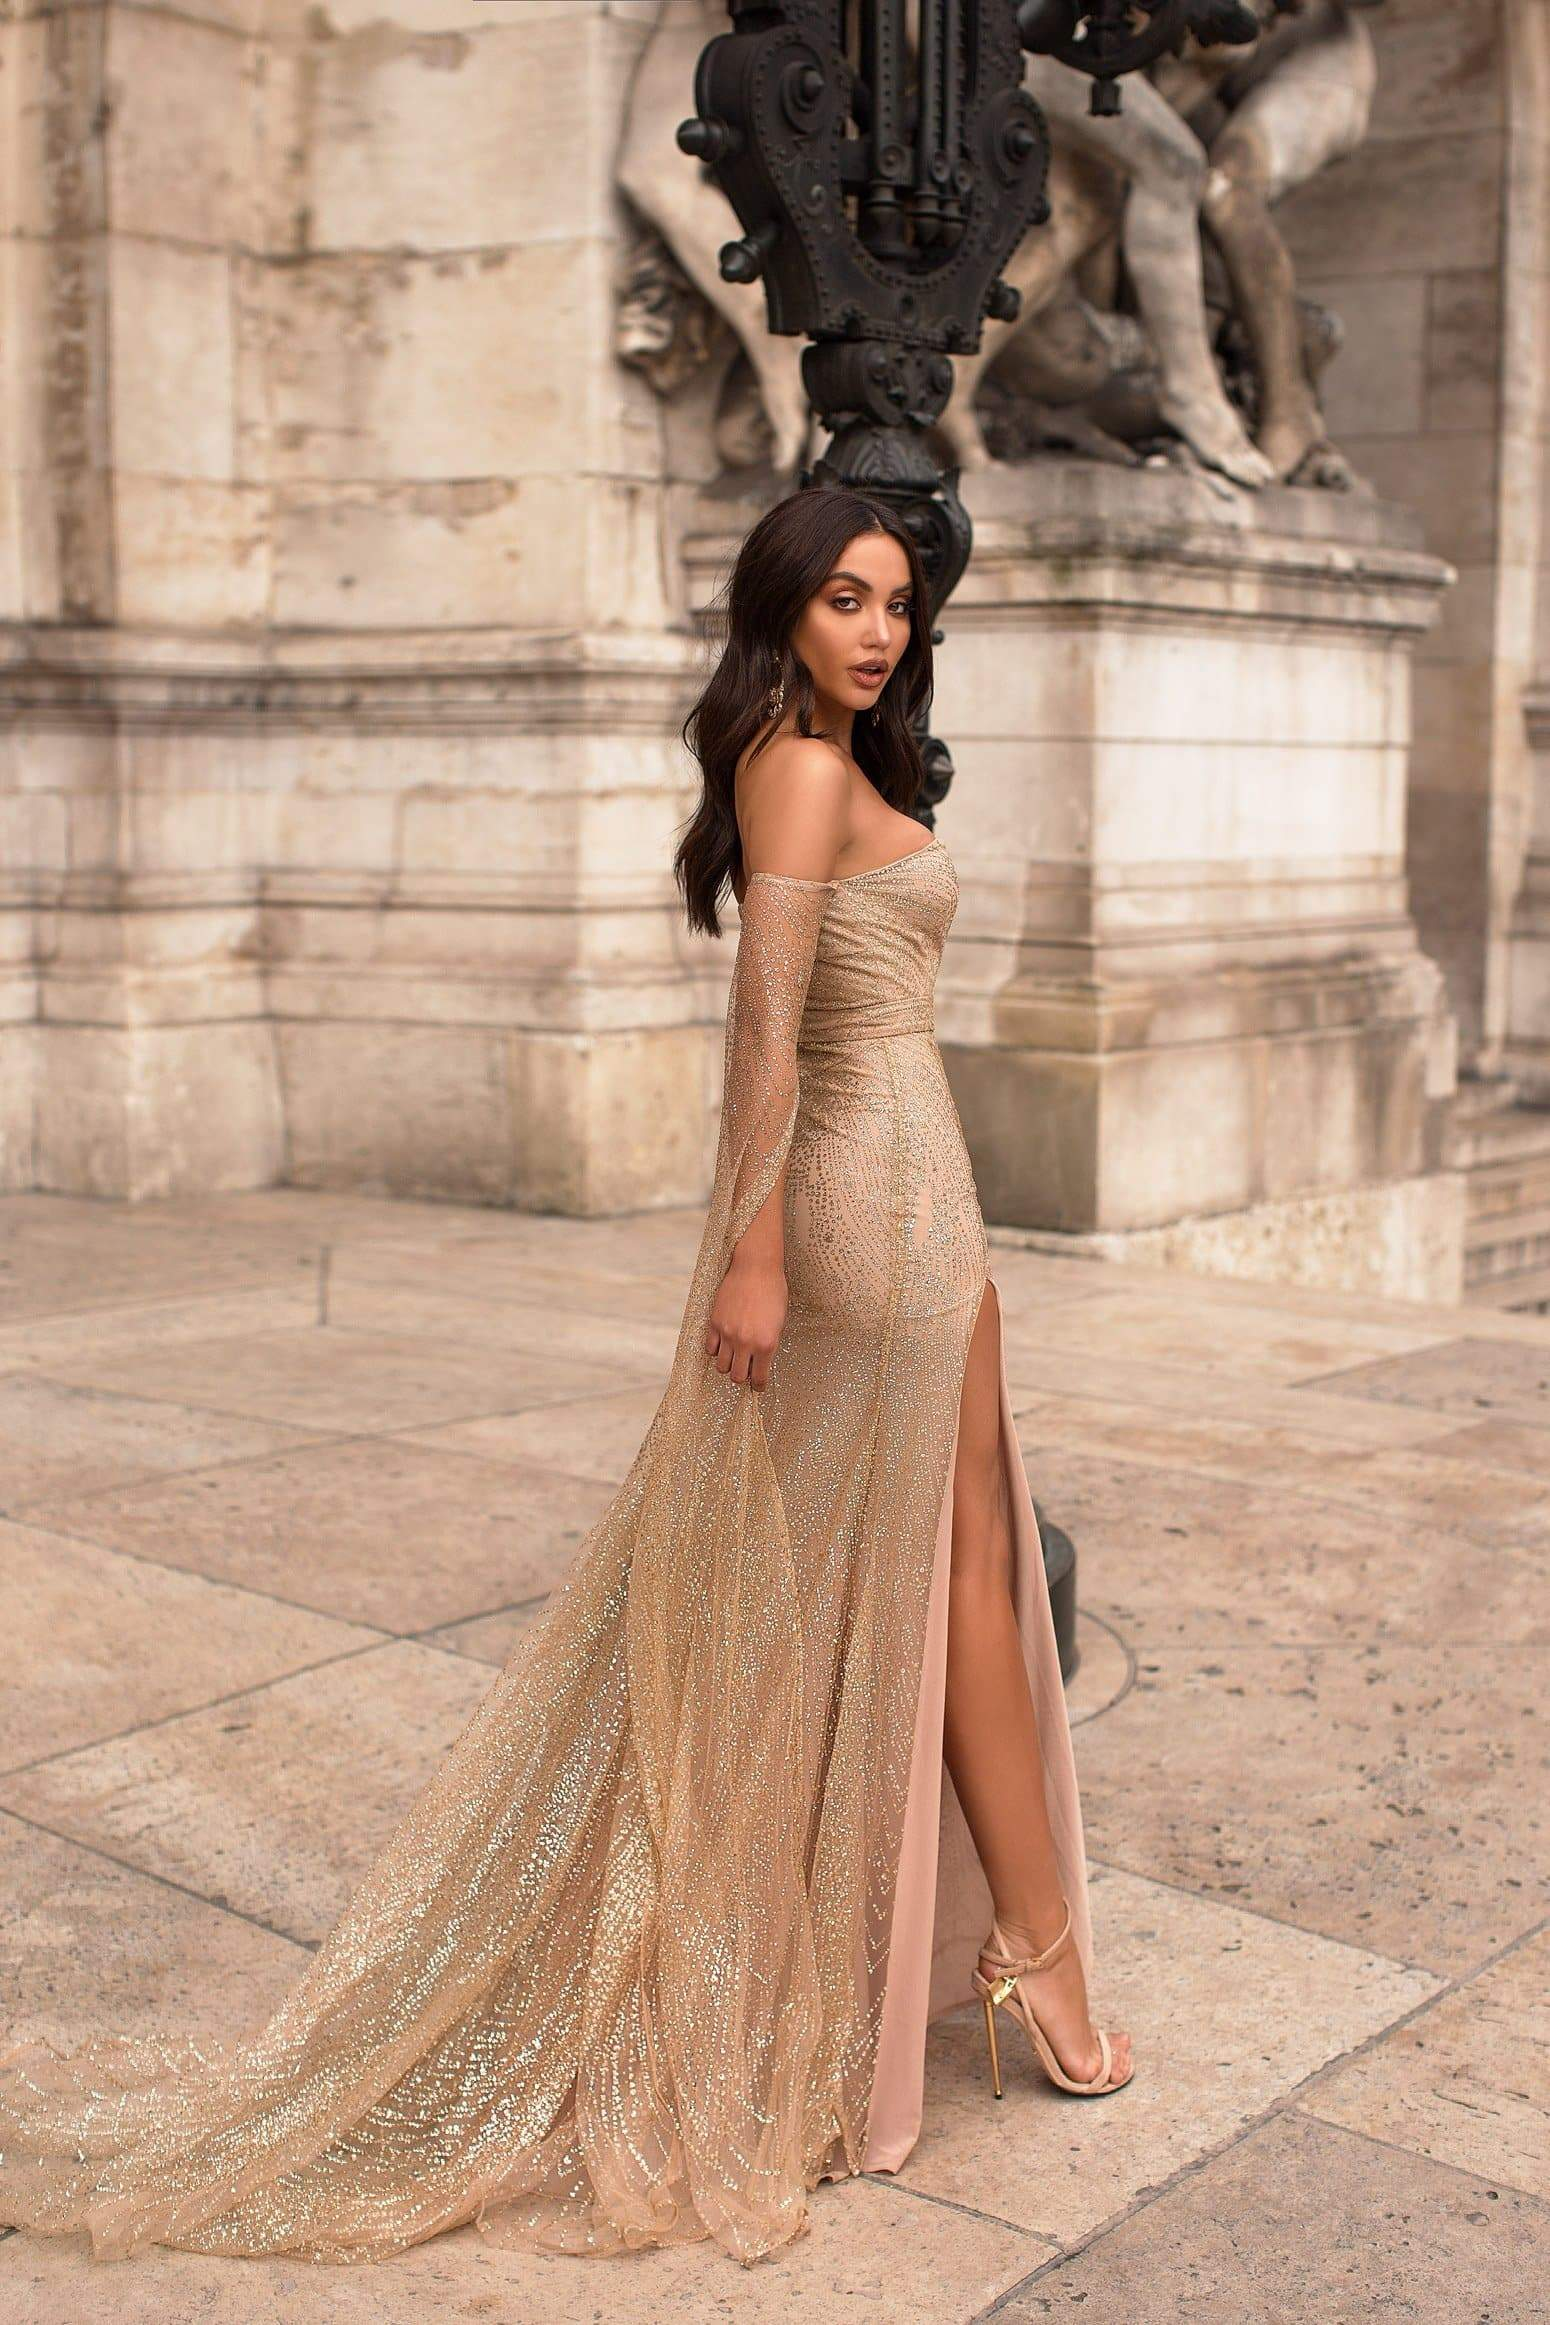 Jocelina - Gold Glitter Gown | Long Off-Shoulder Sleeves & Side Slit